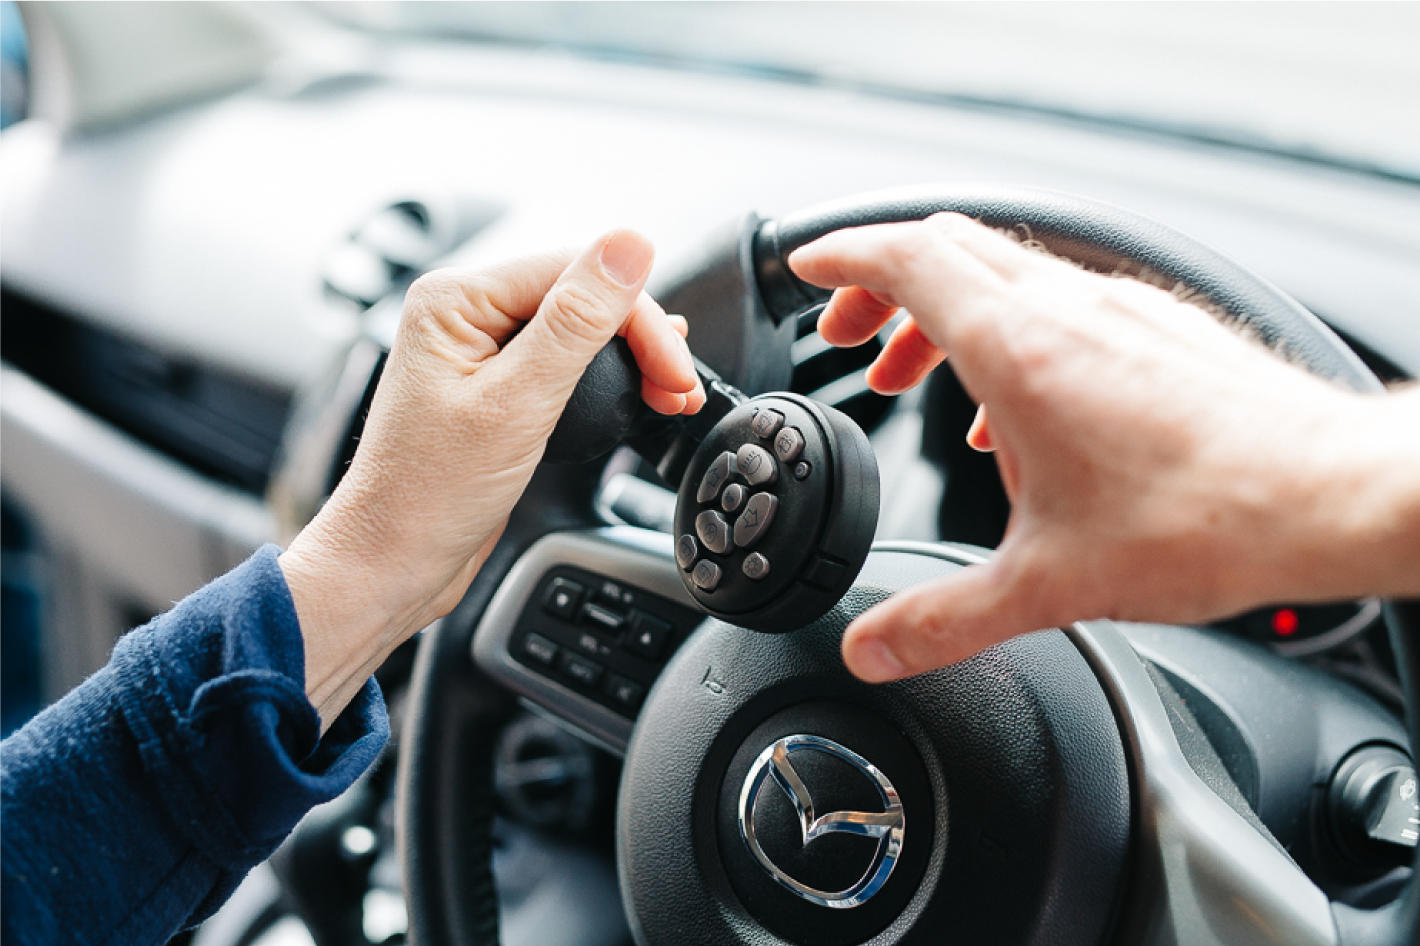 This picture shows a Lodgesons combined steering aid, remote secondary control unit, on a steering wheel, being used by a person using their left hand. Another person's hand is reaching in to assist that person.